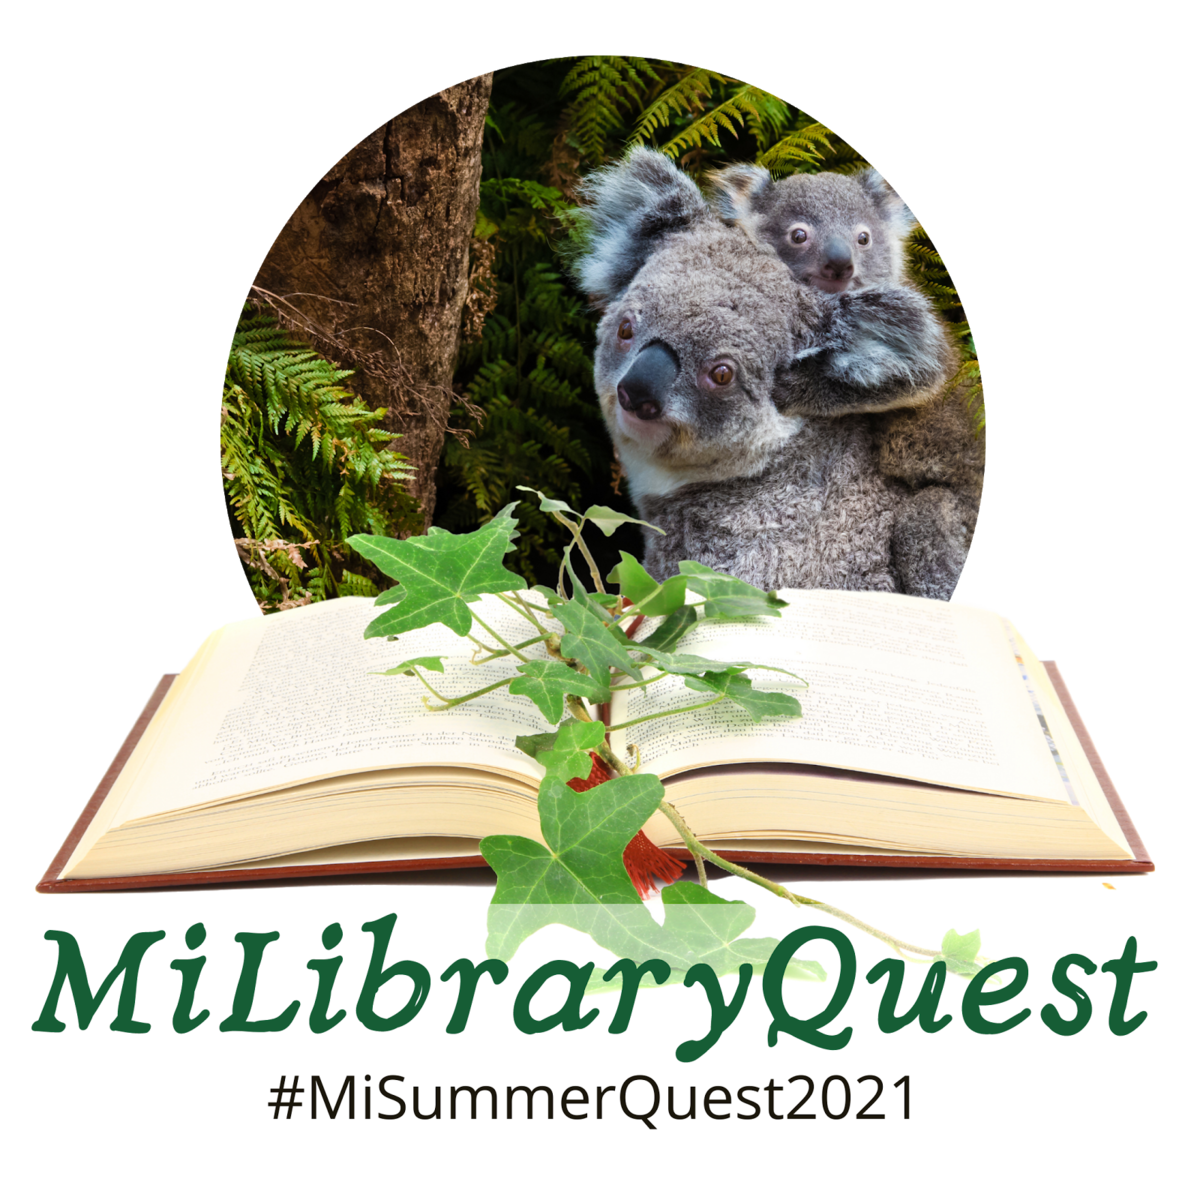 MiLibraryQuest logo with koalas, an open book, and the text #MiLbraryQuest2021